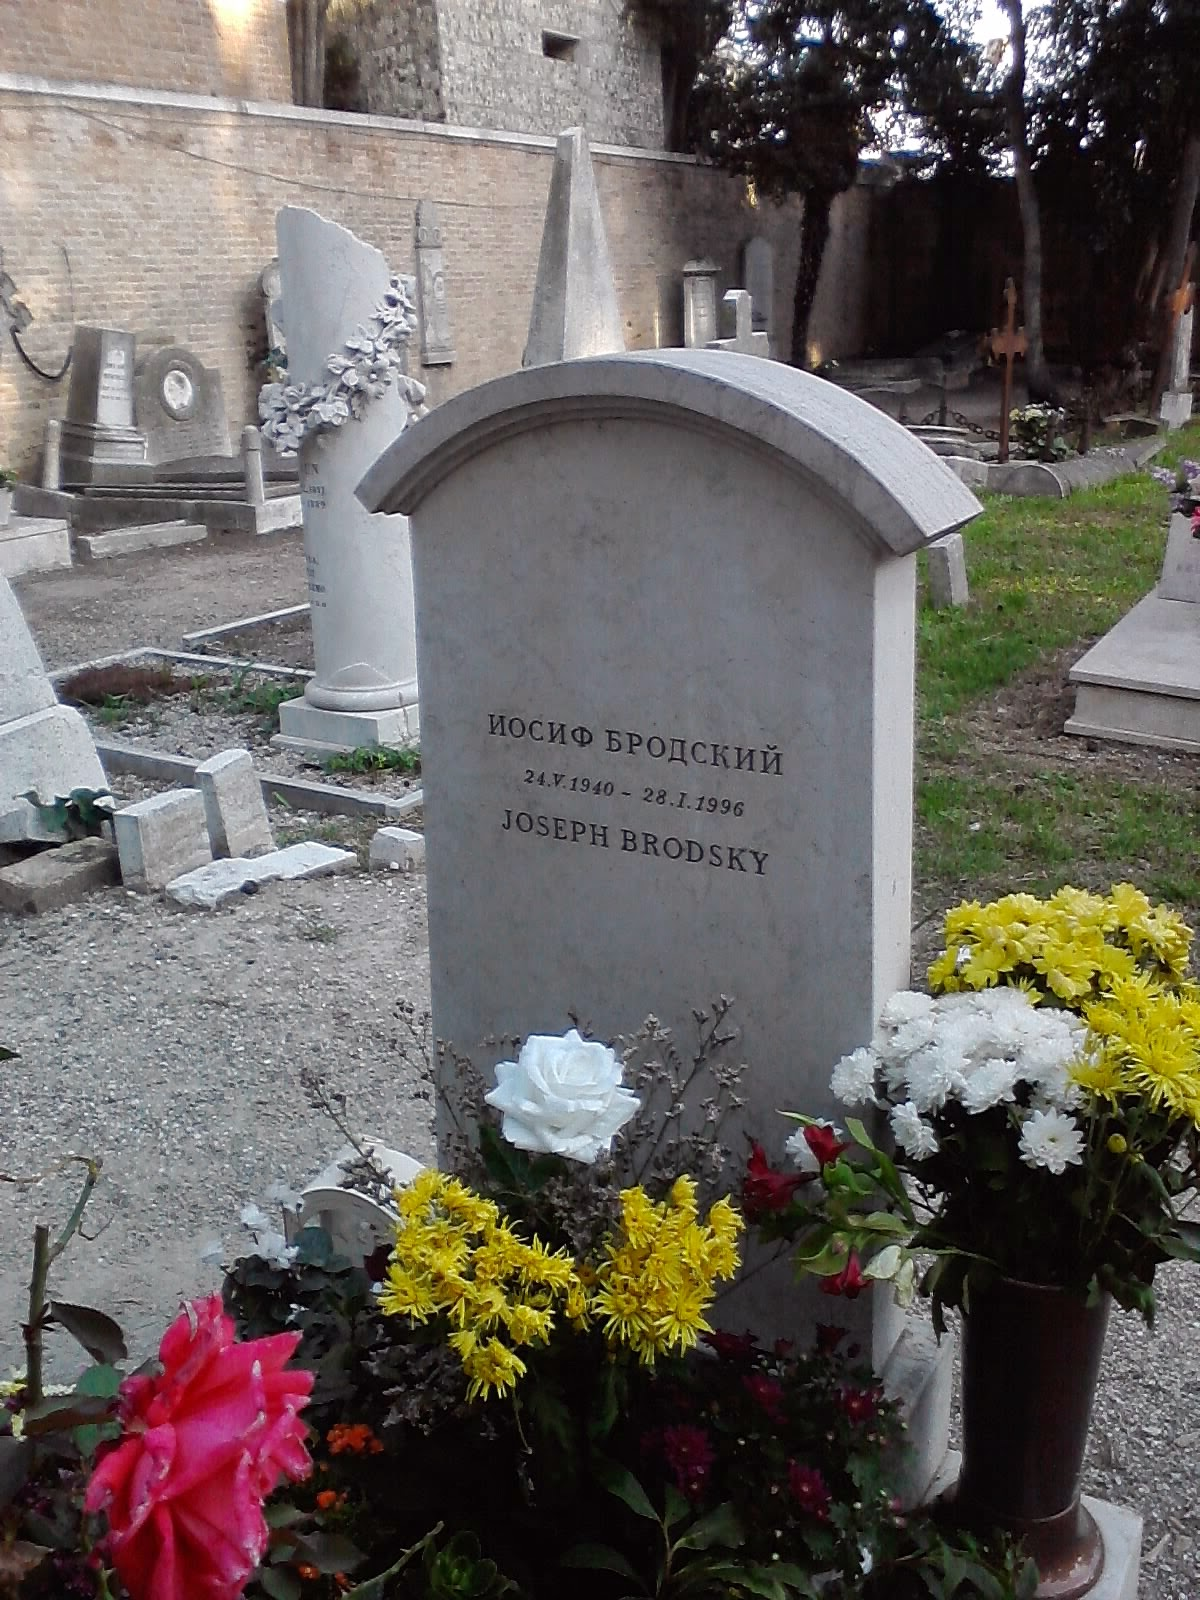 Jospeh Brodsky grave - Venice, Italy - Photo by Cat Bauer - Venice Blog